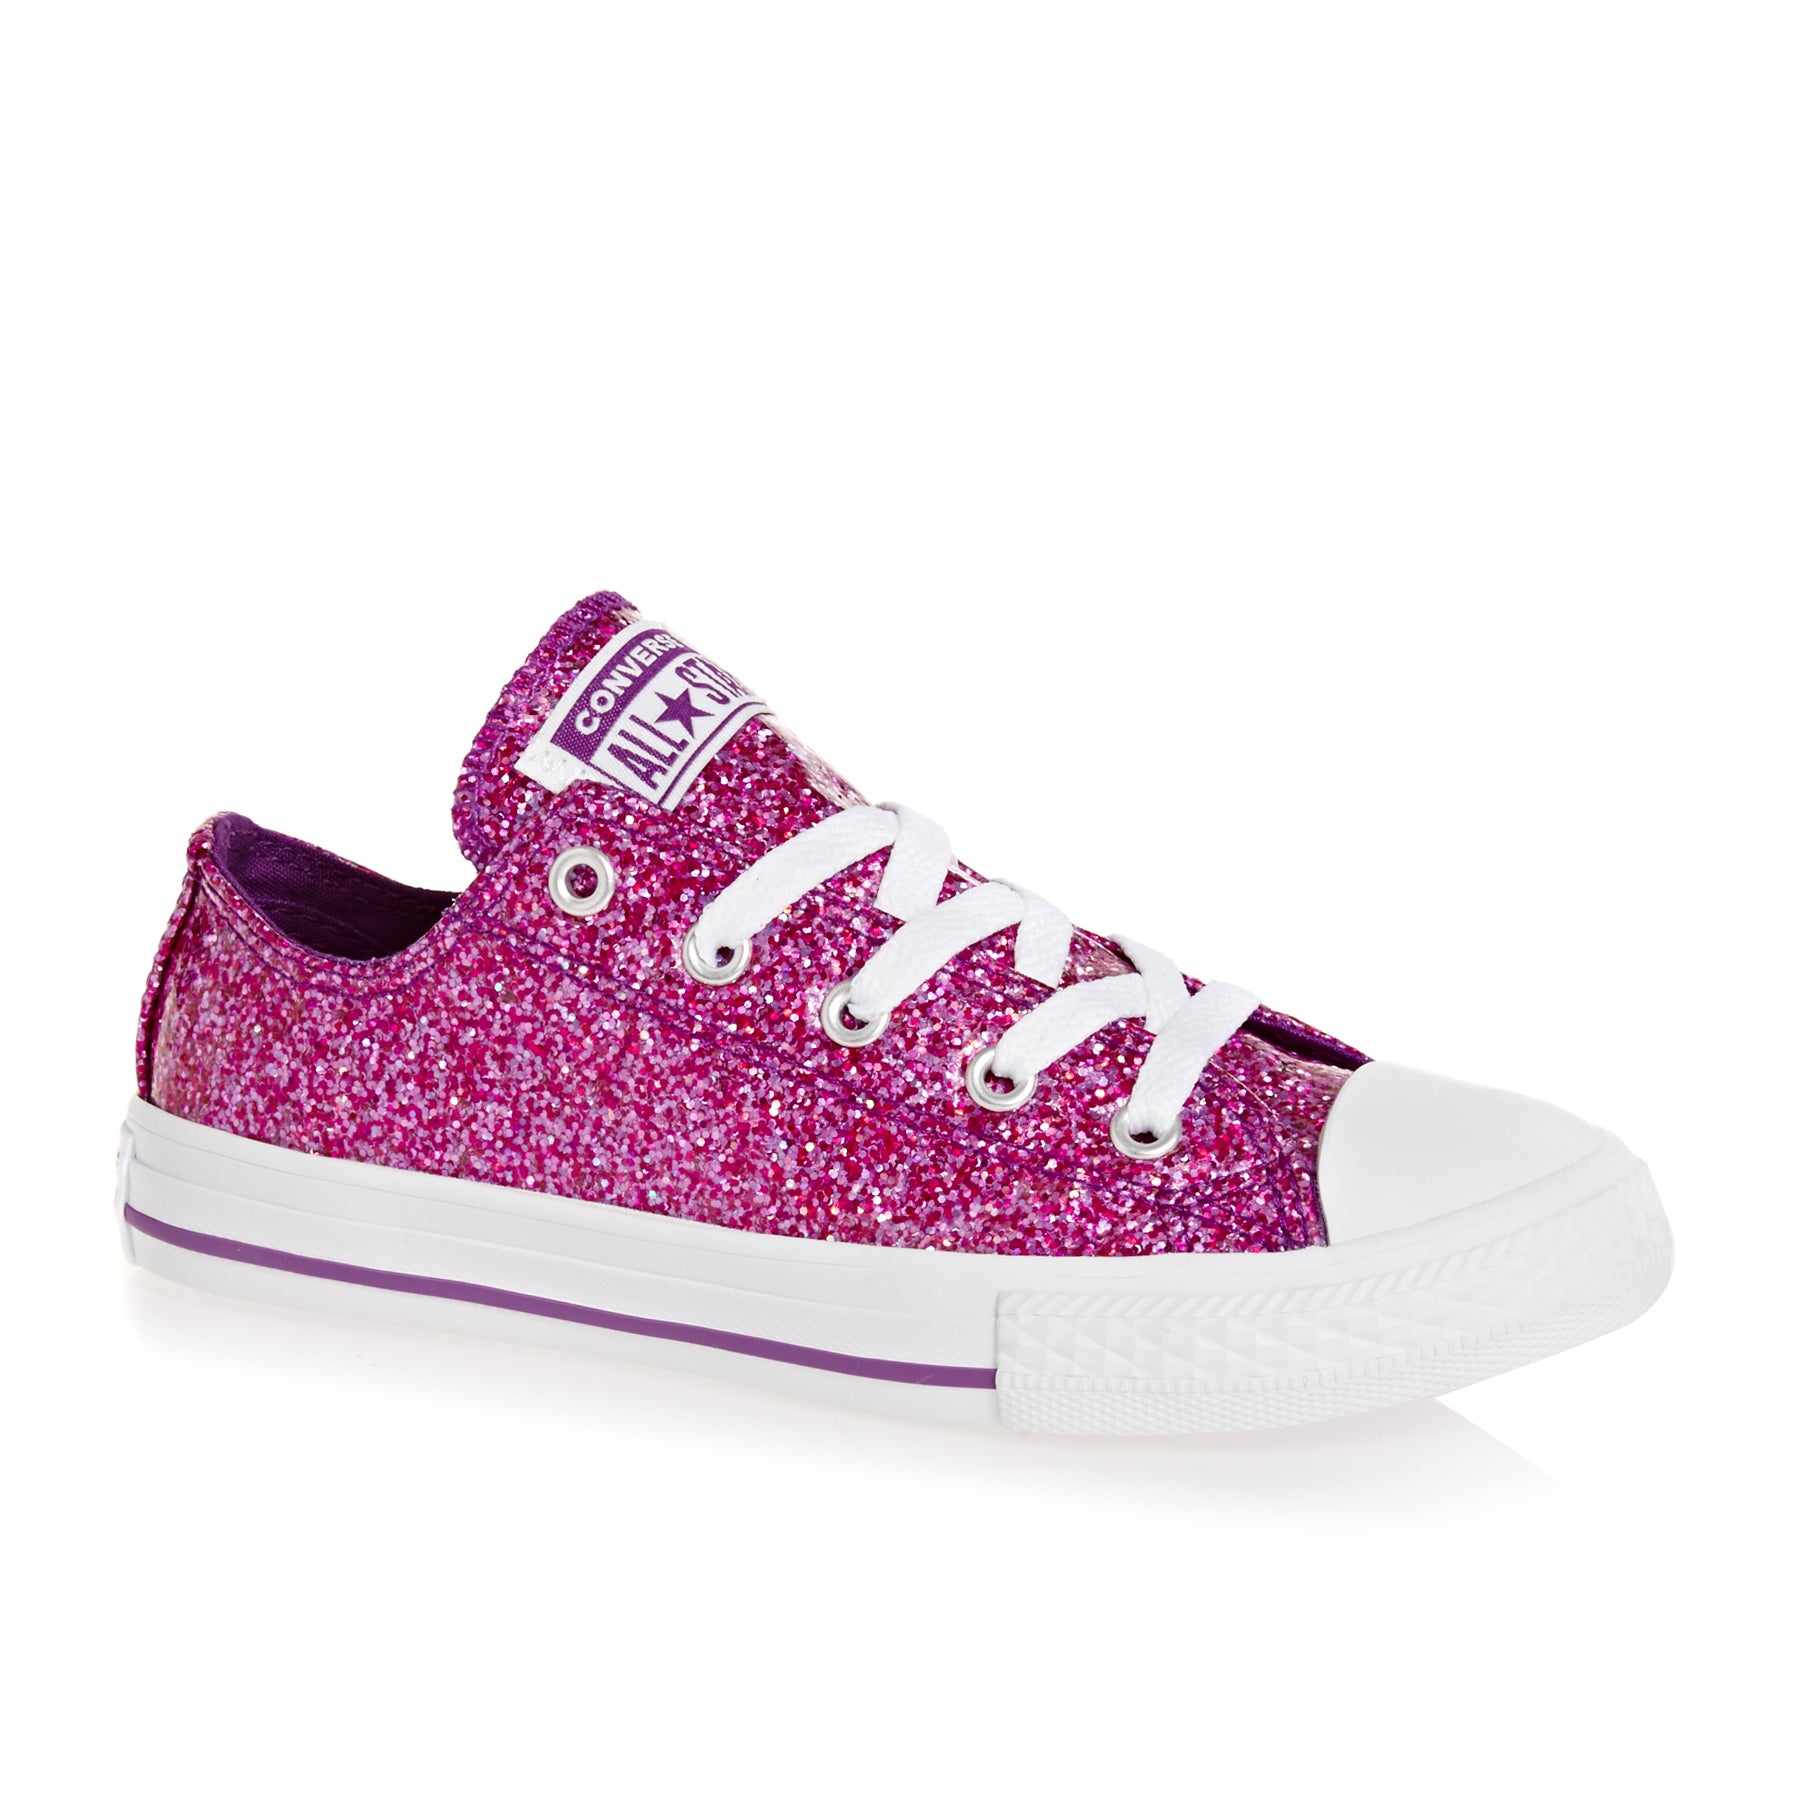 Converse Chuck Taylor Glitter All Stars OX Girls Shoes - Icon Violet White White